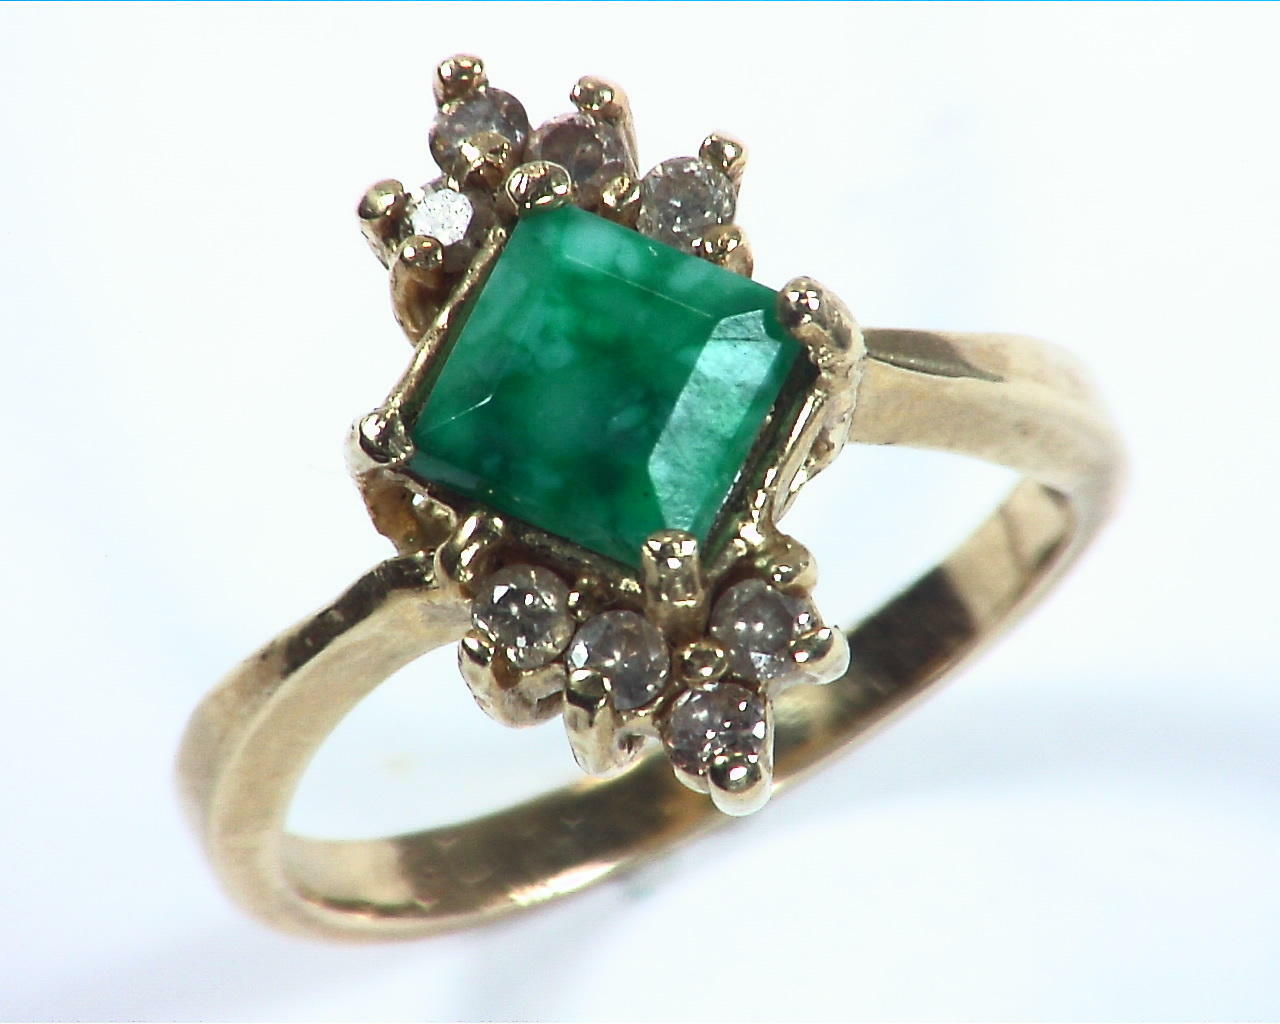 Emerald Natural Genuine Gemstone Gold And Diamond Ring RFK,158 2